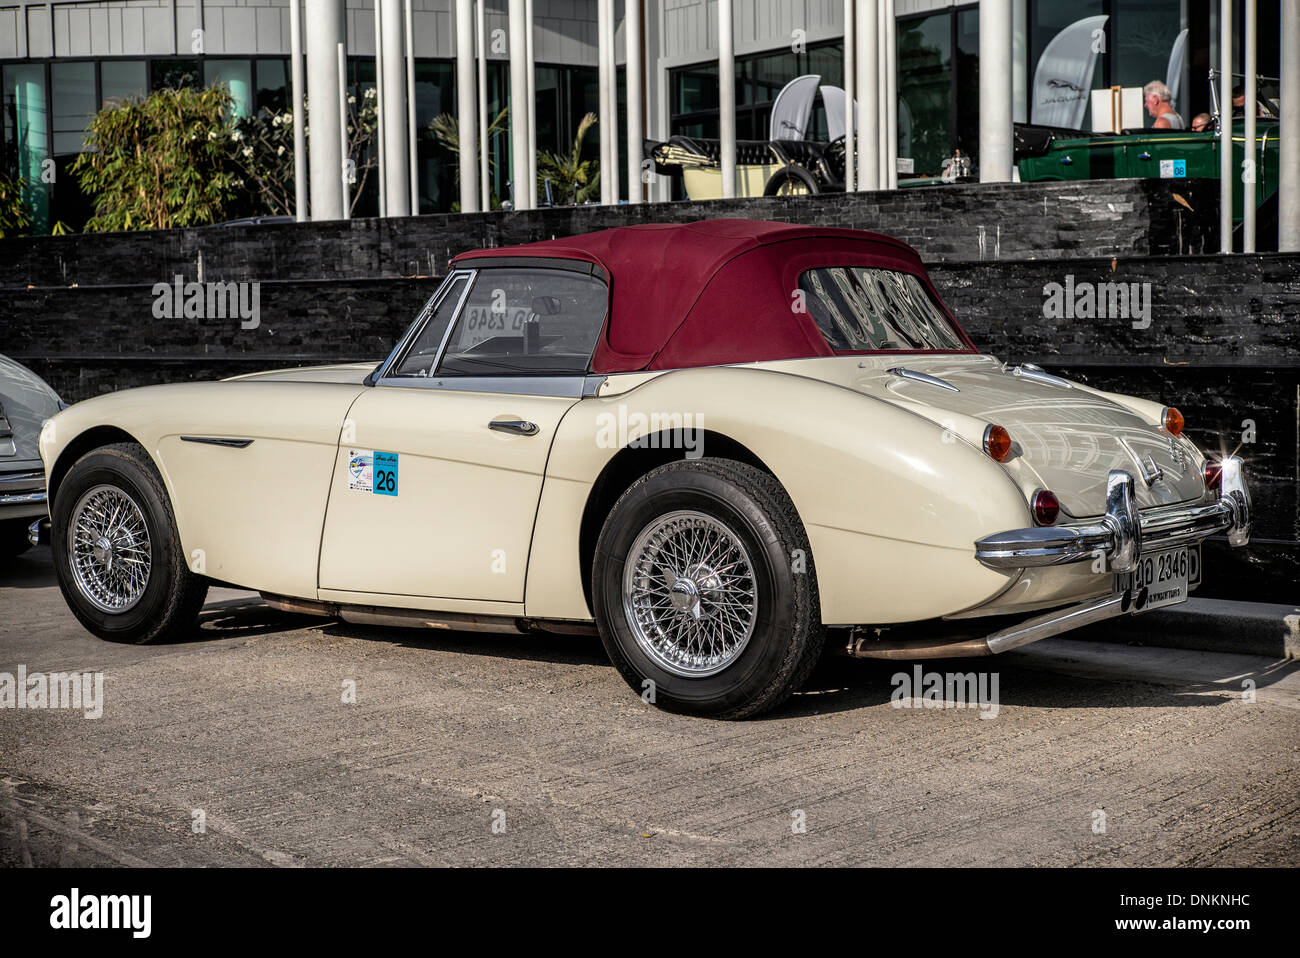 Superior Full Length Side View Of A Austin Healey 3000, 3 Litre Classic British  Convertible Sports Car In Cream With Red Hood.